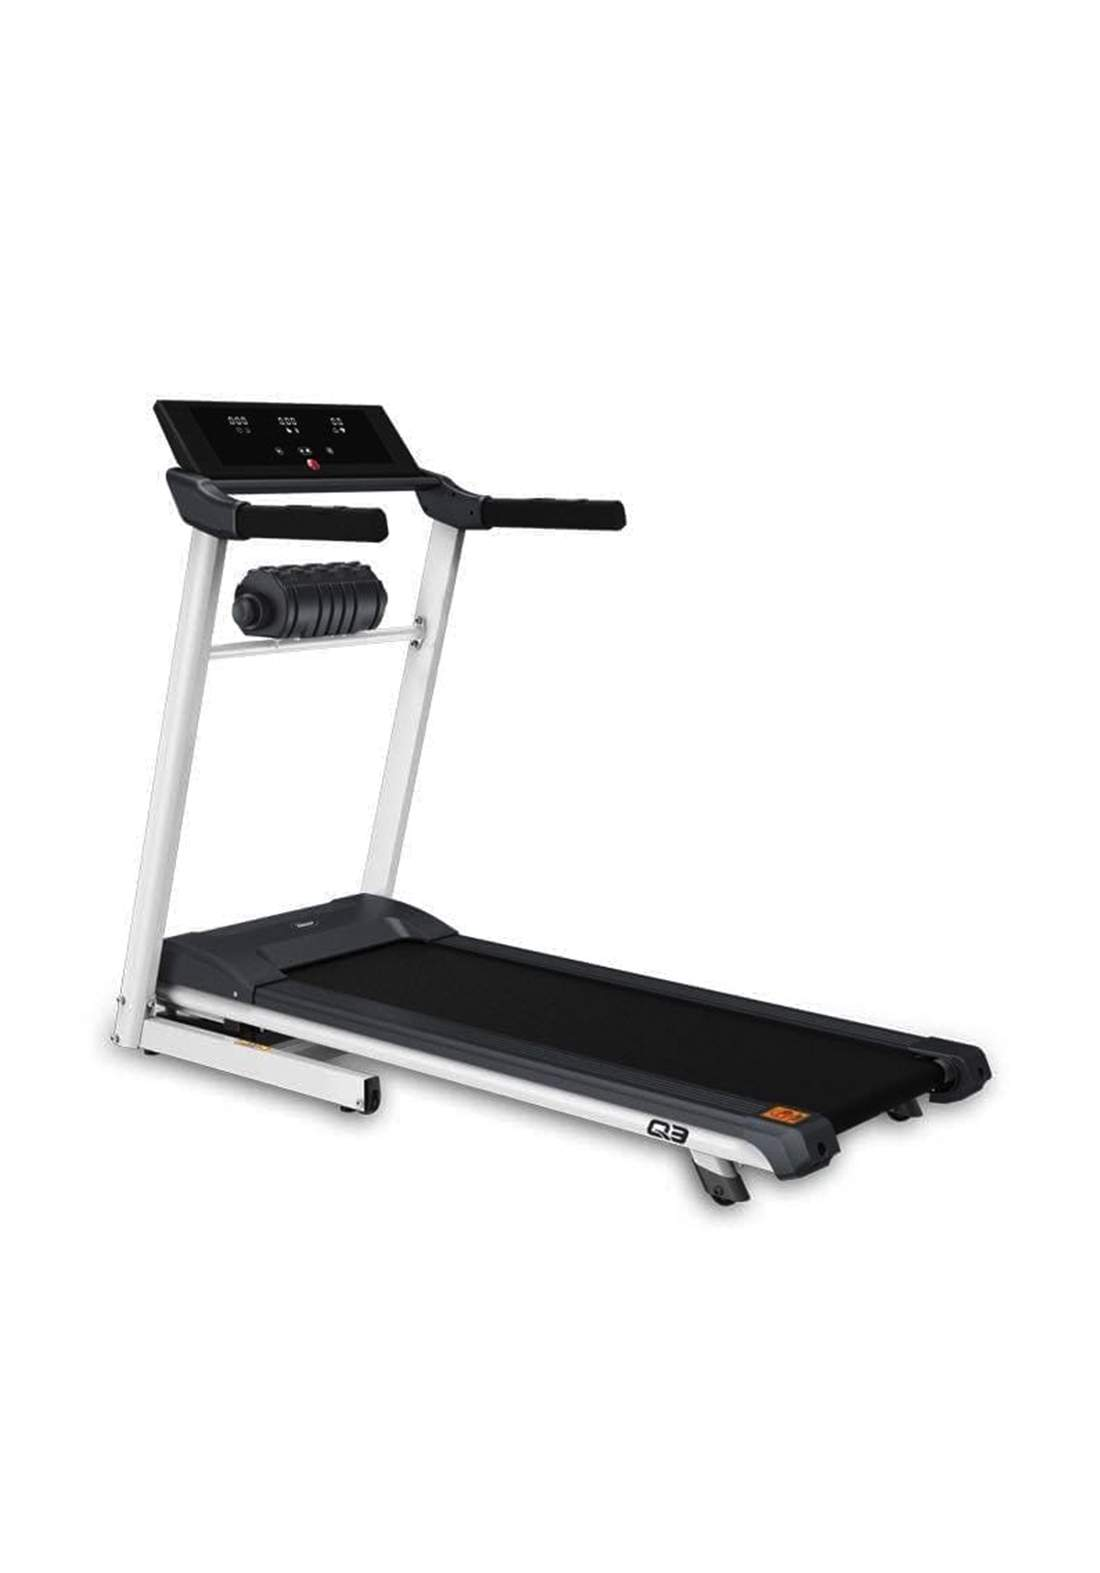 Daily Youth Q3MS Treadmill  1.75 H DC جهاز جري دبل ماطور